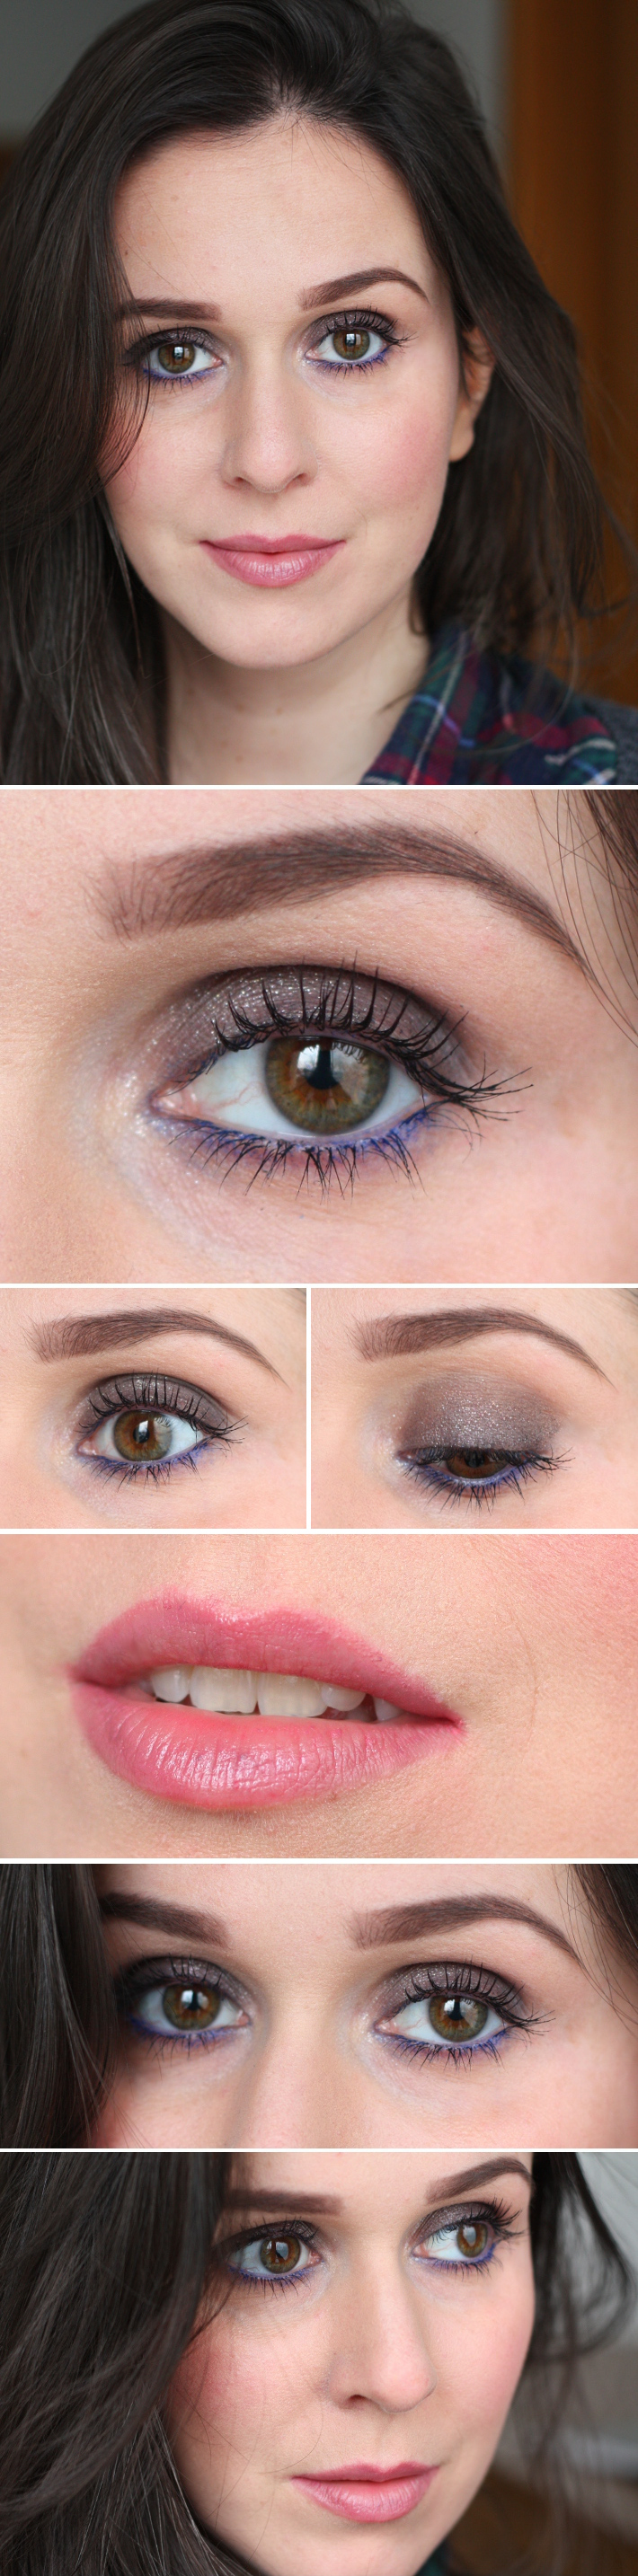 beauty tutorial: shimmery smokey eye with blue kajal tightlining